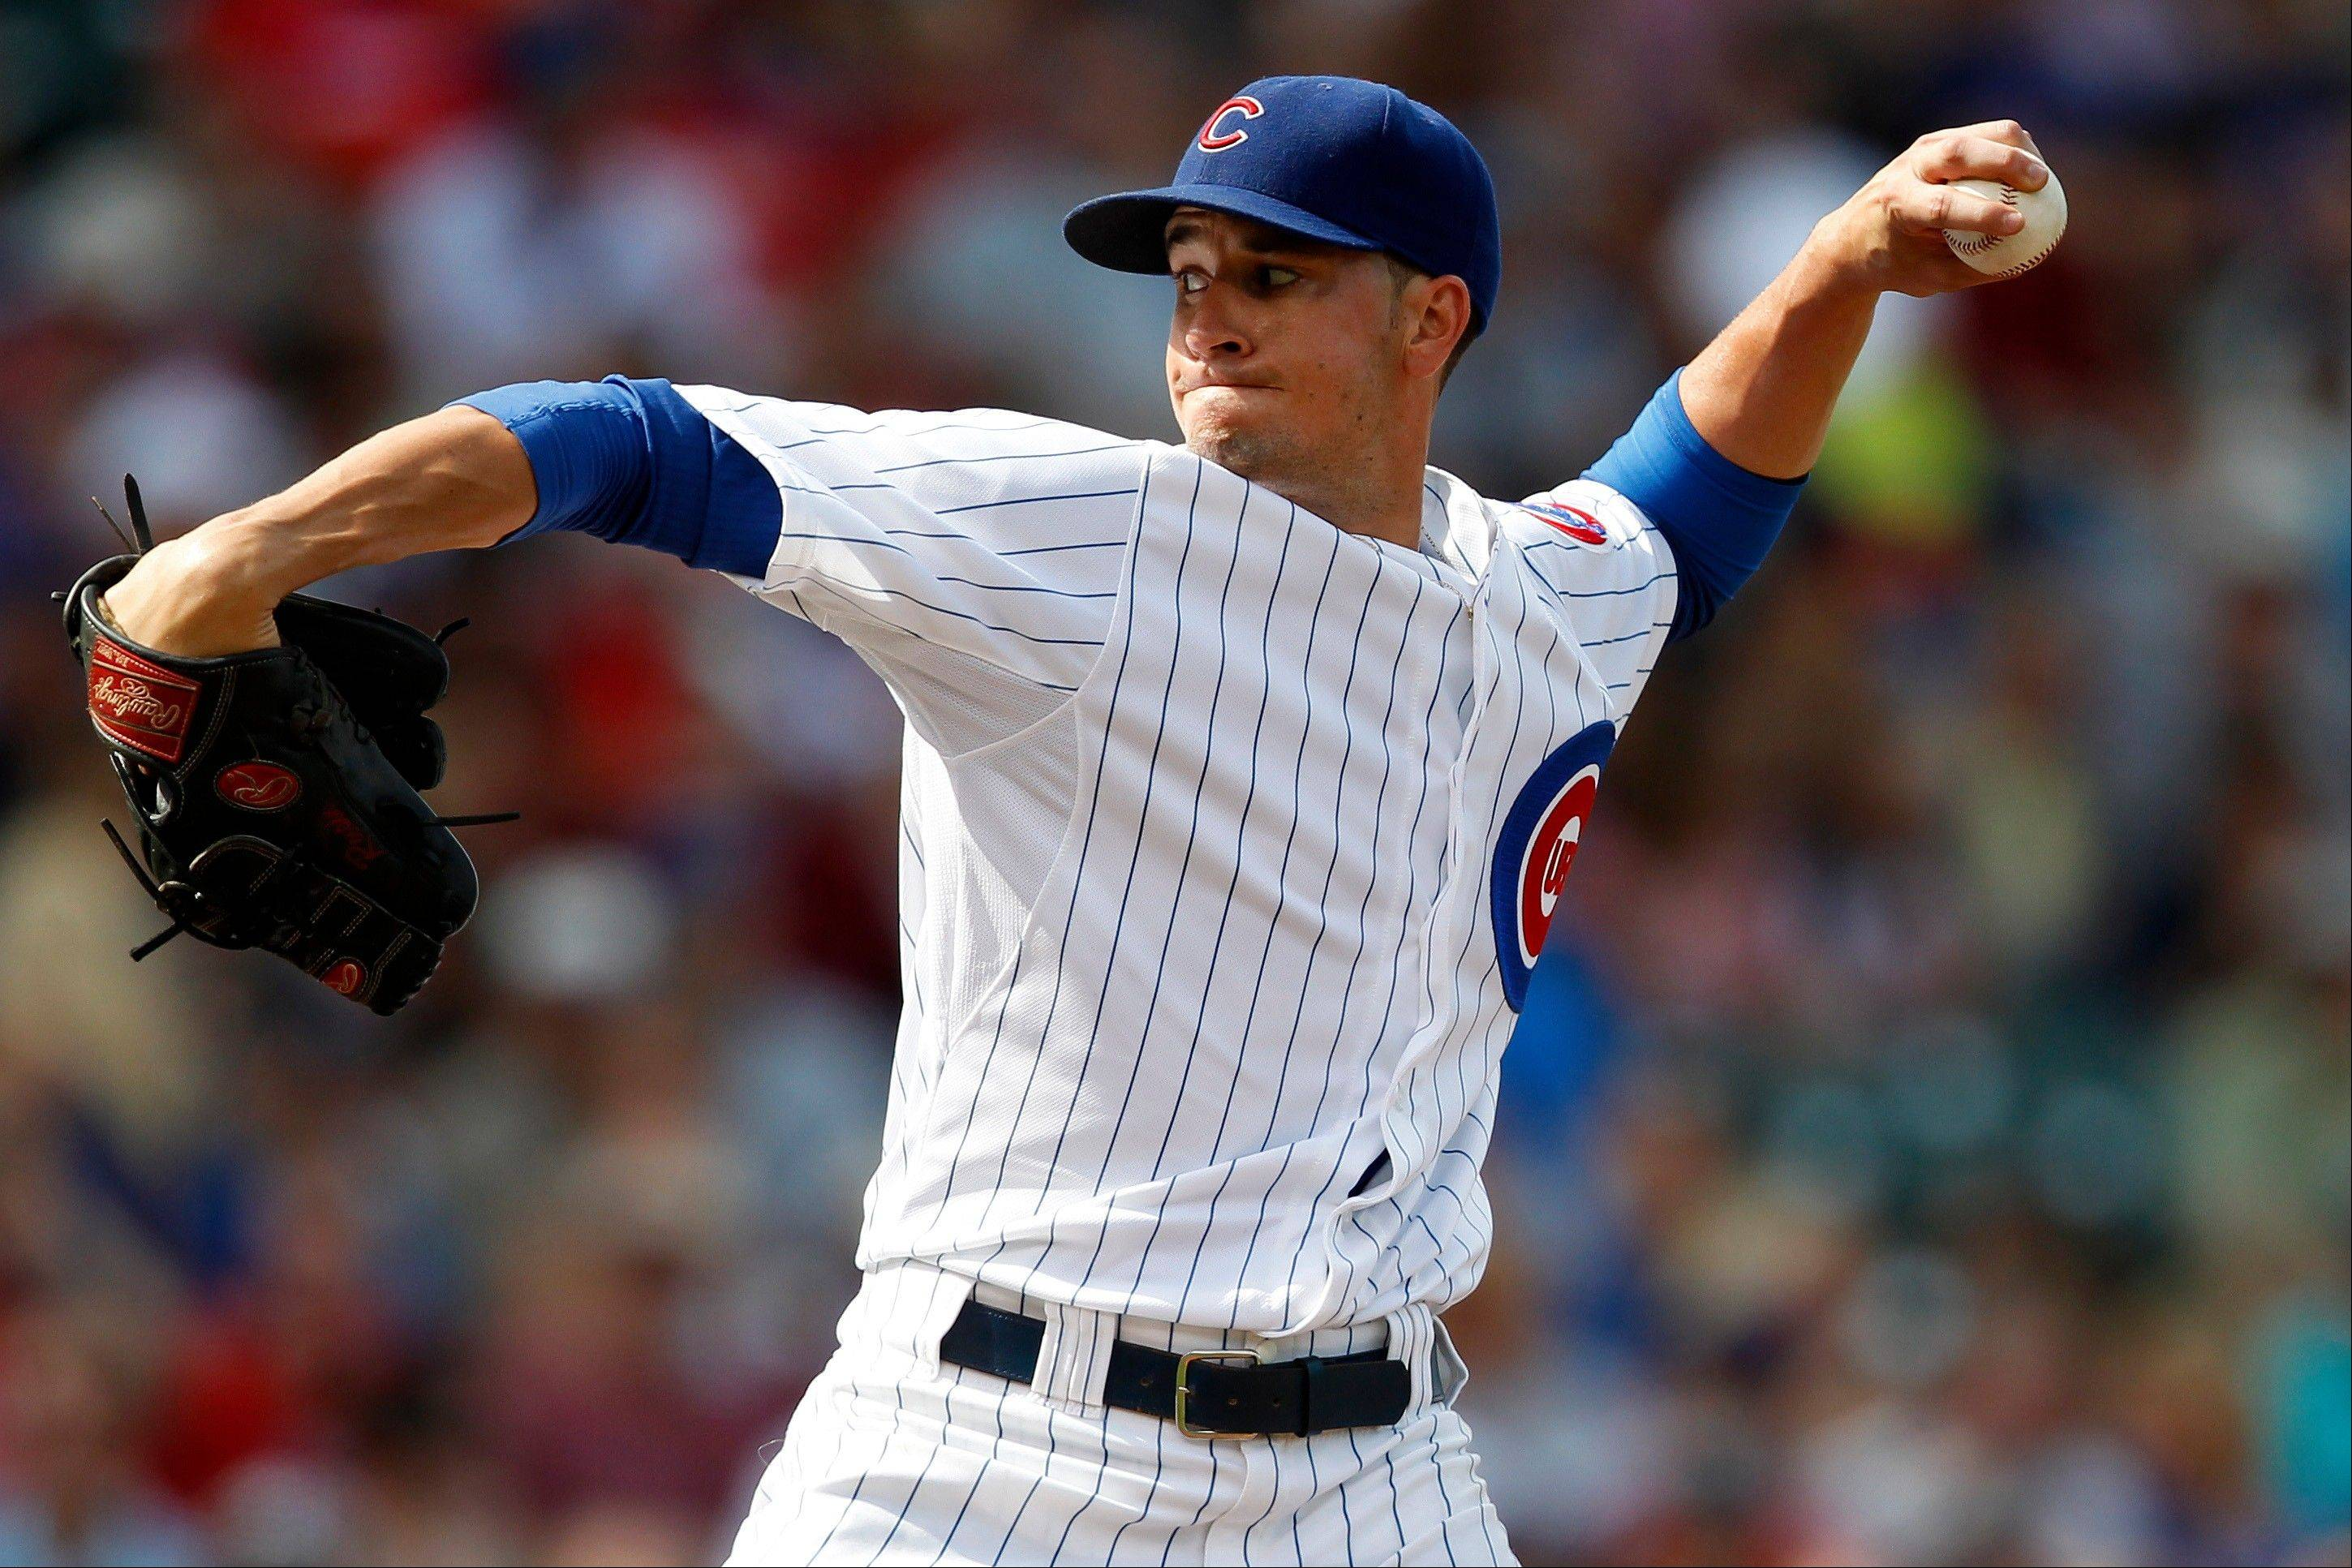 Cubs starting pitcher Chris Rusin threw 5 innings against the Phillies on Saturday at Wrigley Field. He has a 2.74 ERA after 9 starts this season.